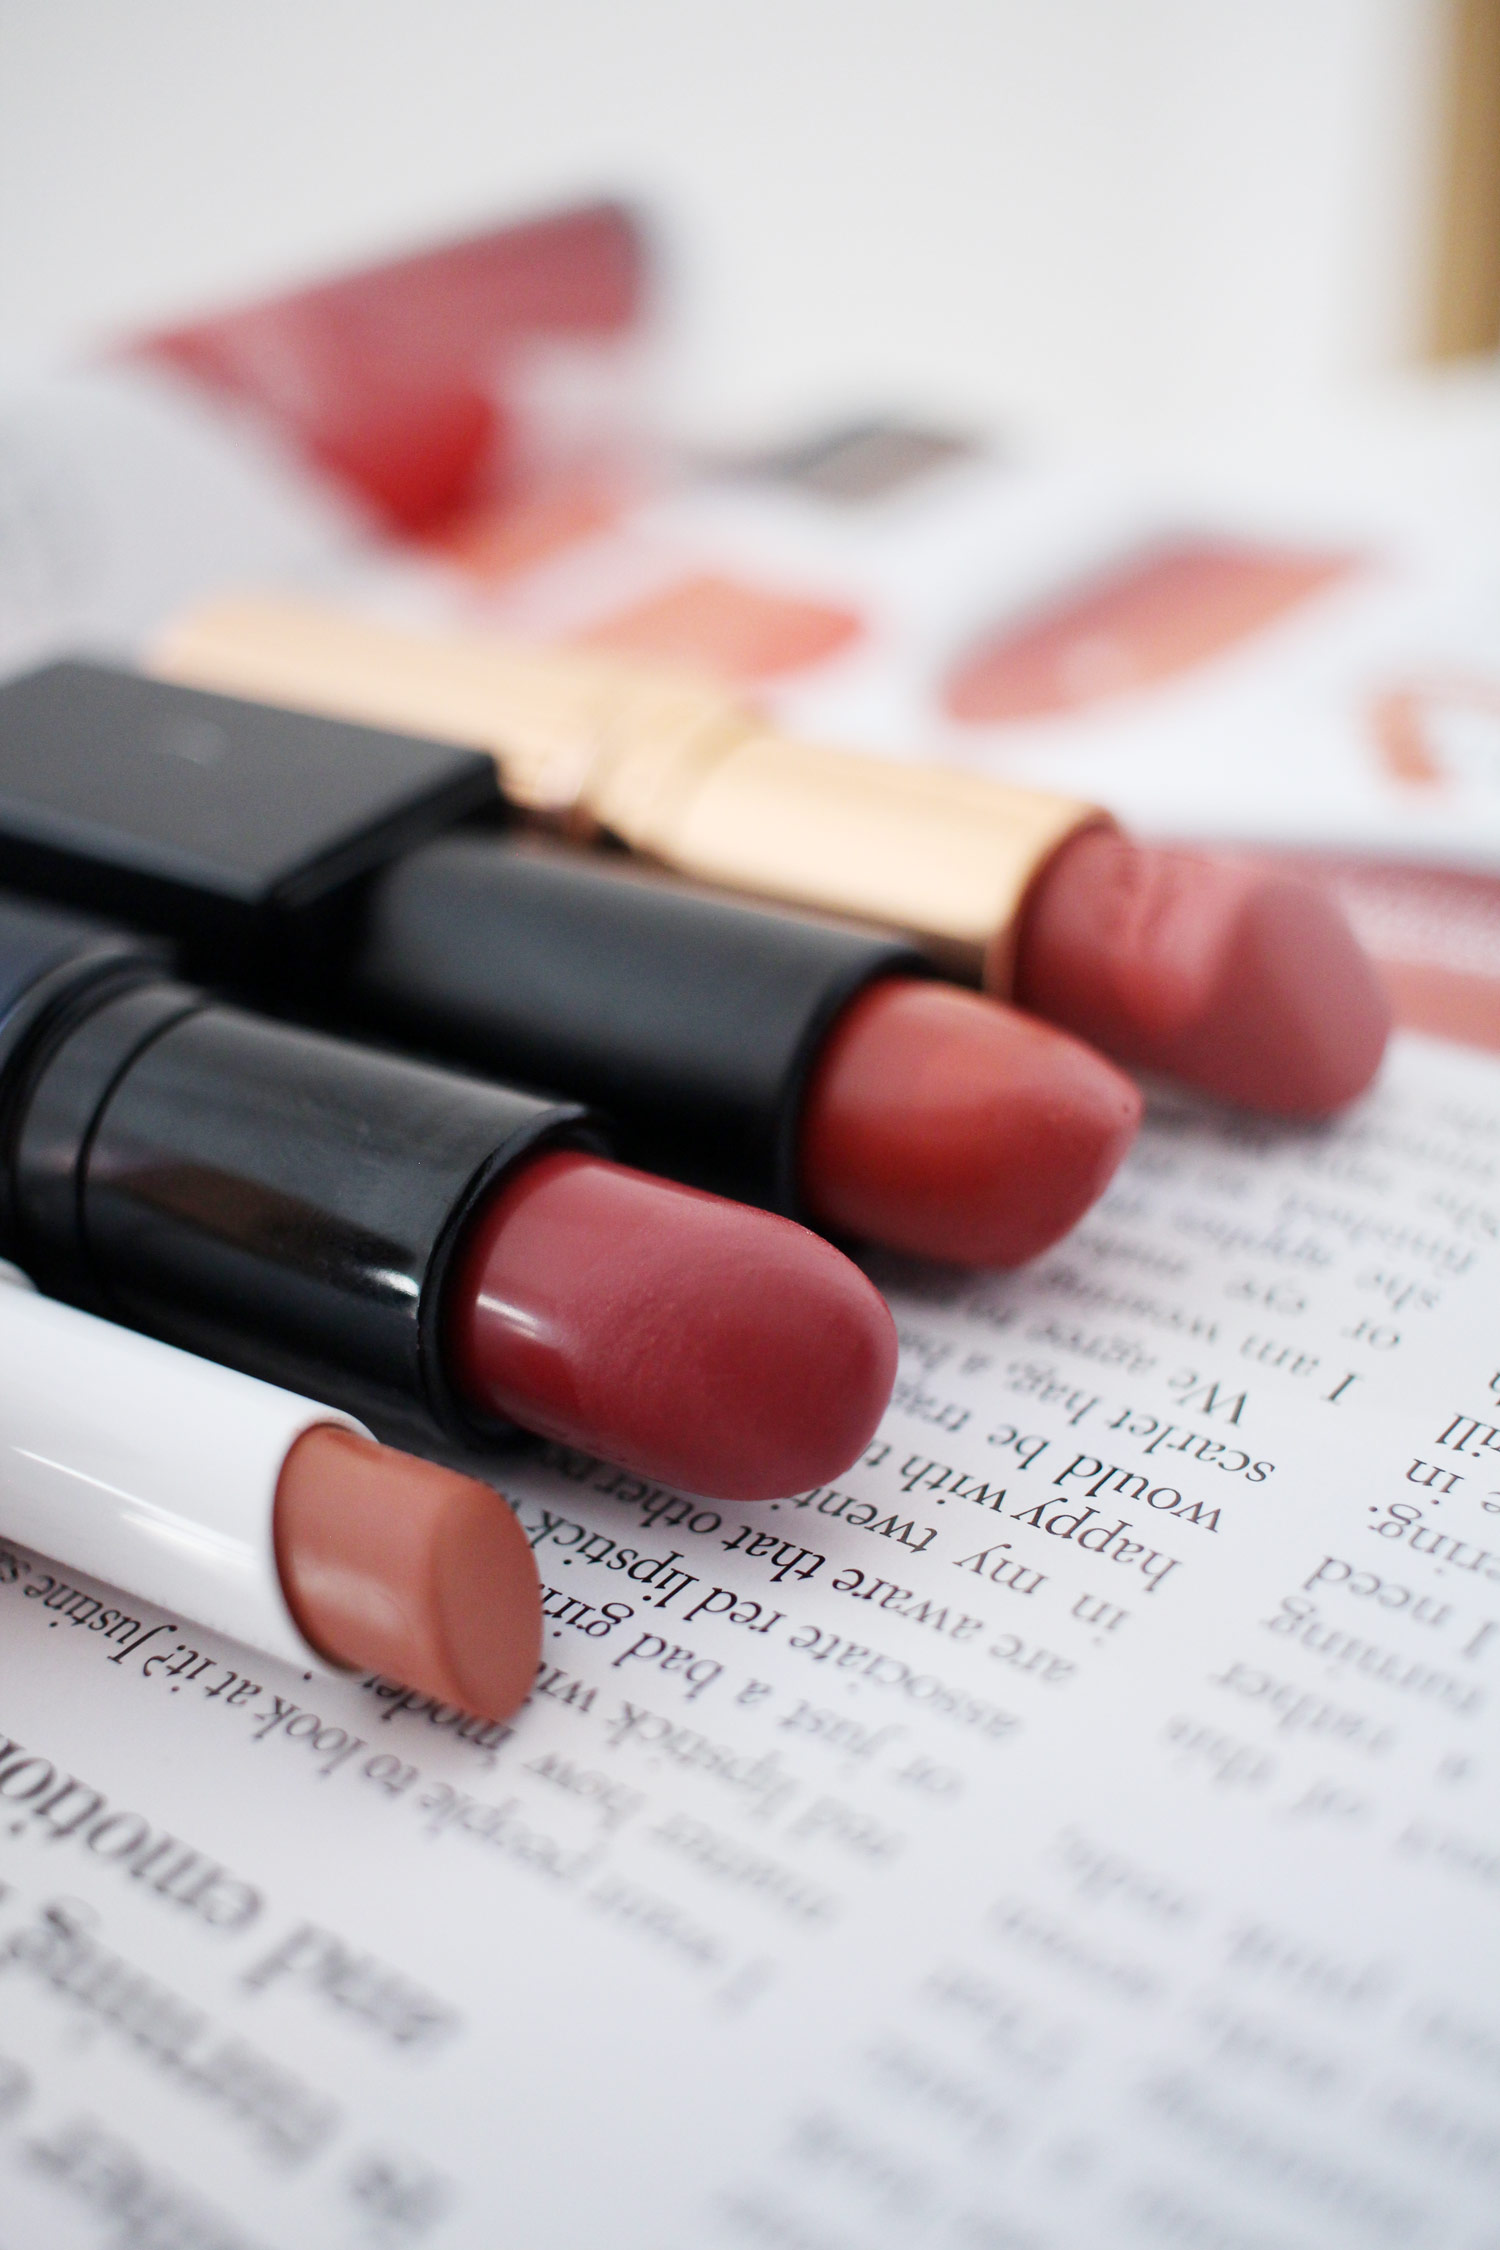 four-peach-pink-rose-lipsticks-to-try-now-4